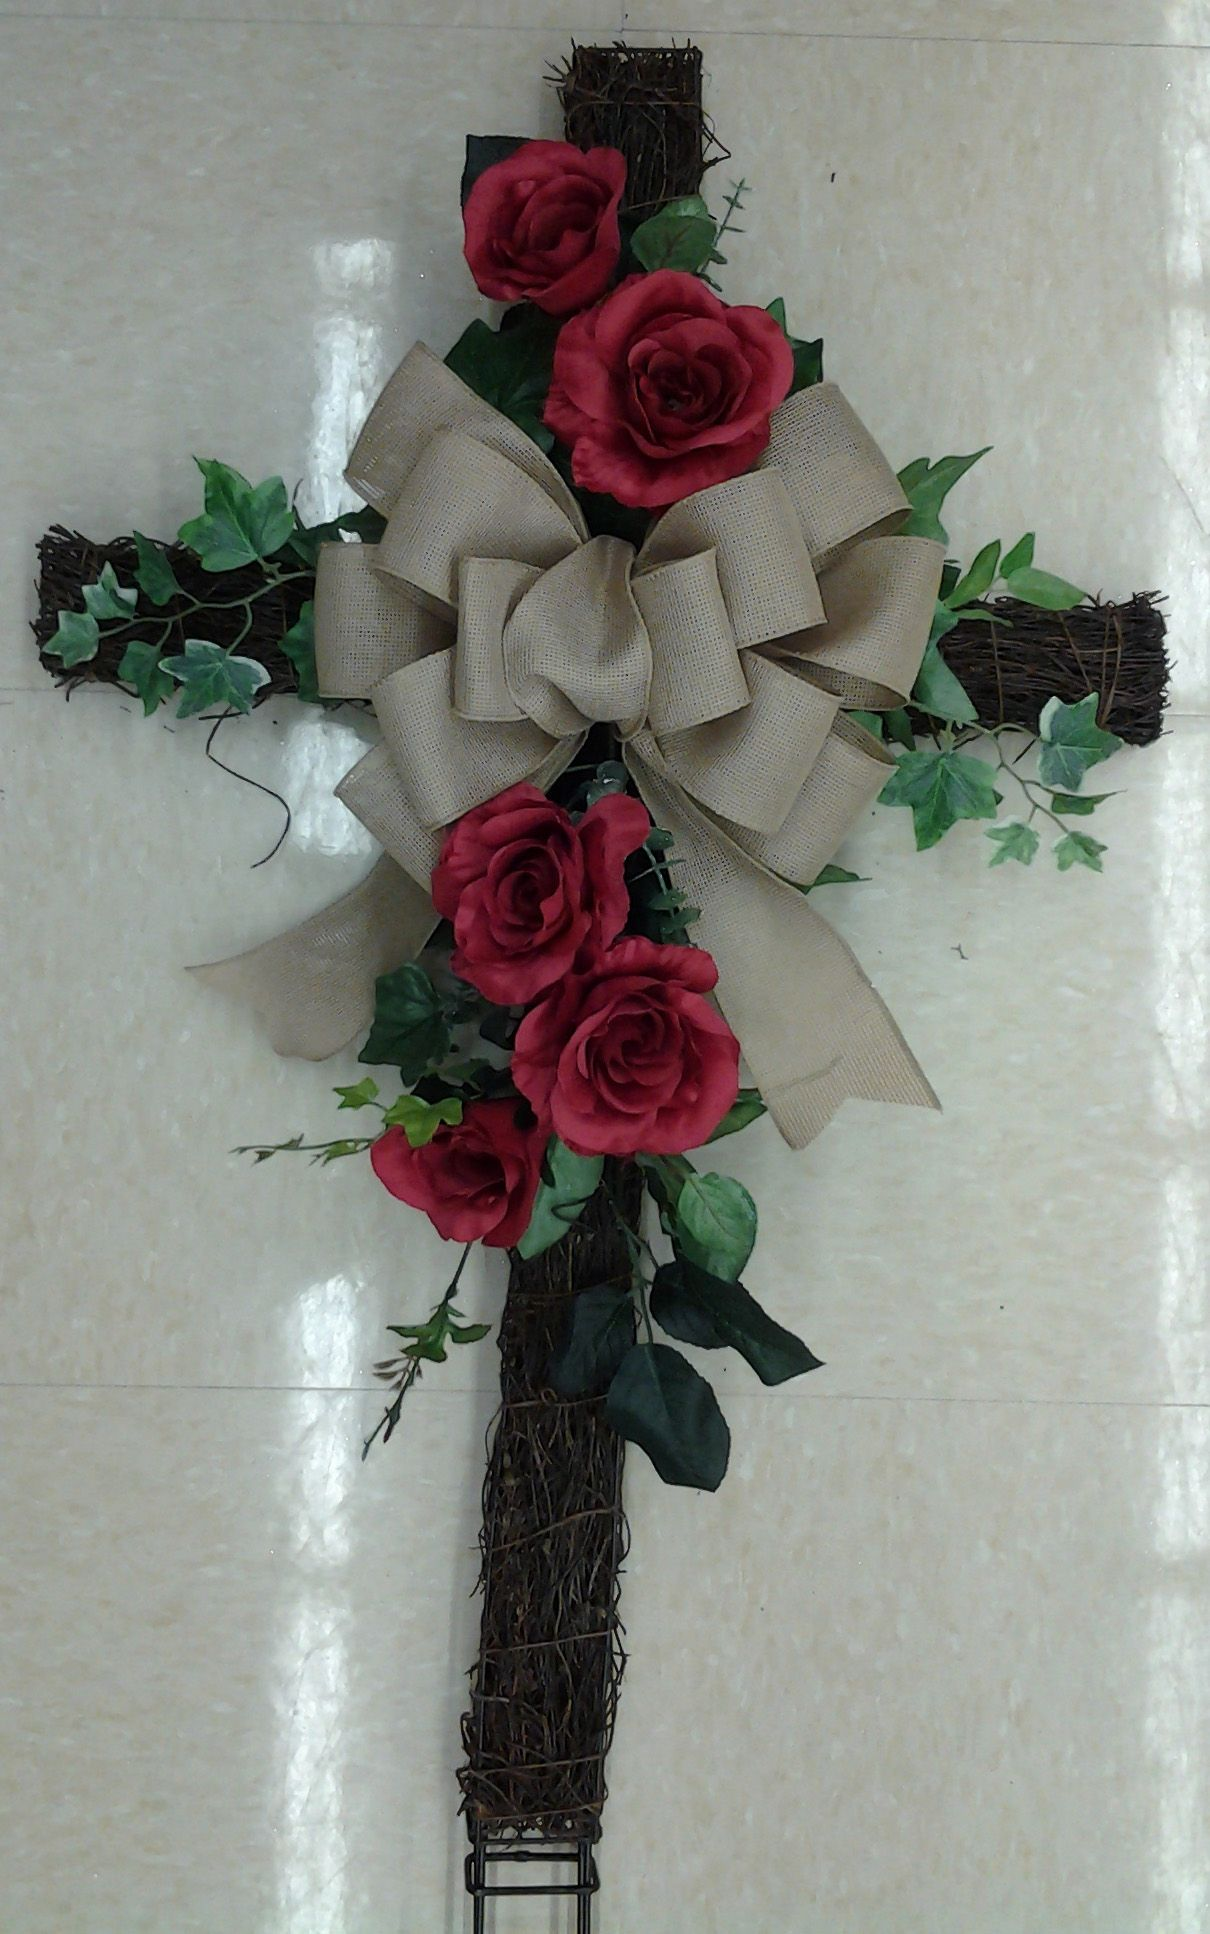 floral design spring remembrance cross 2014 by renee